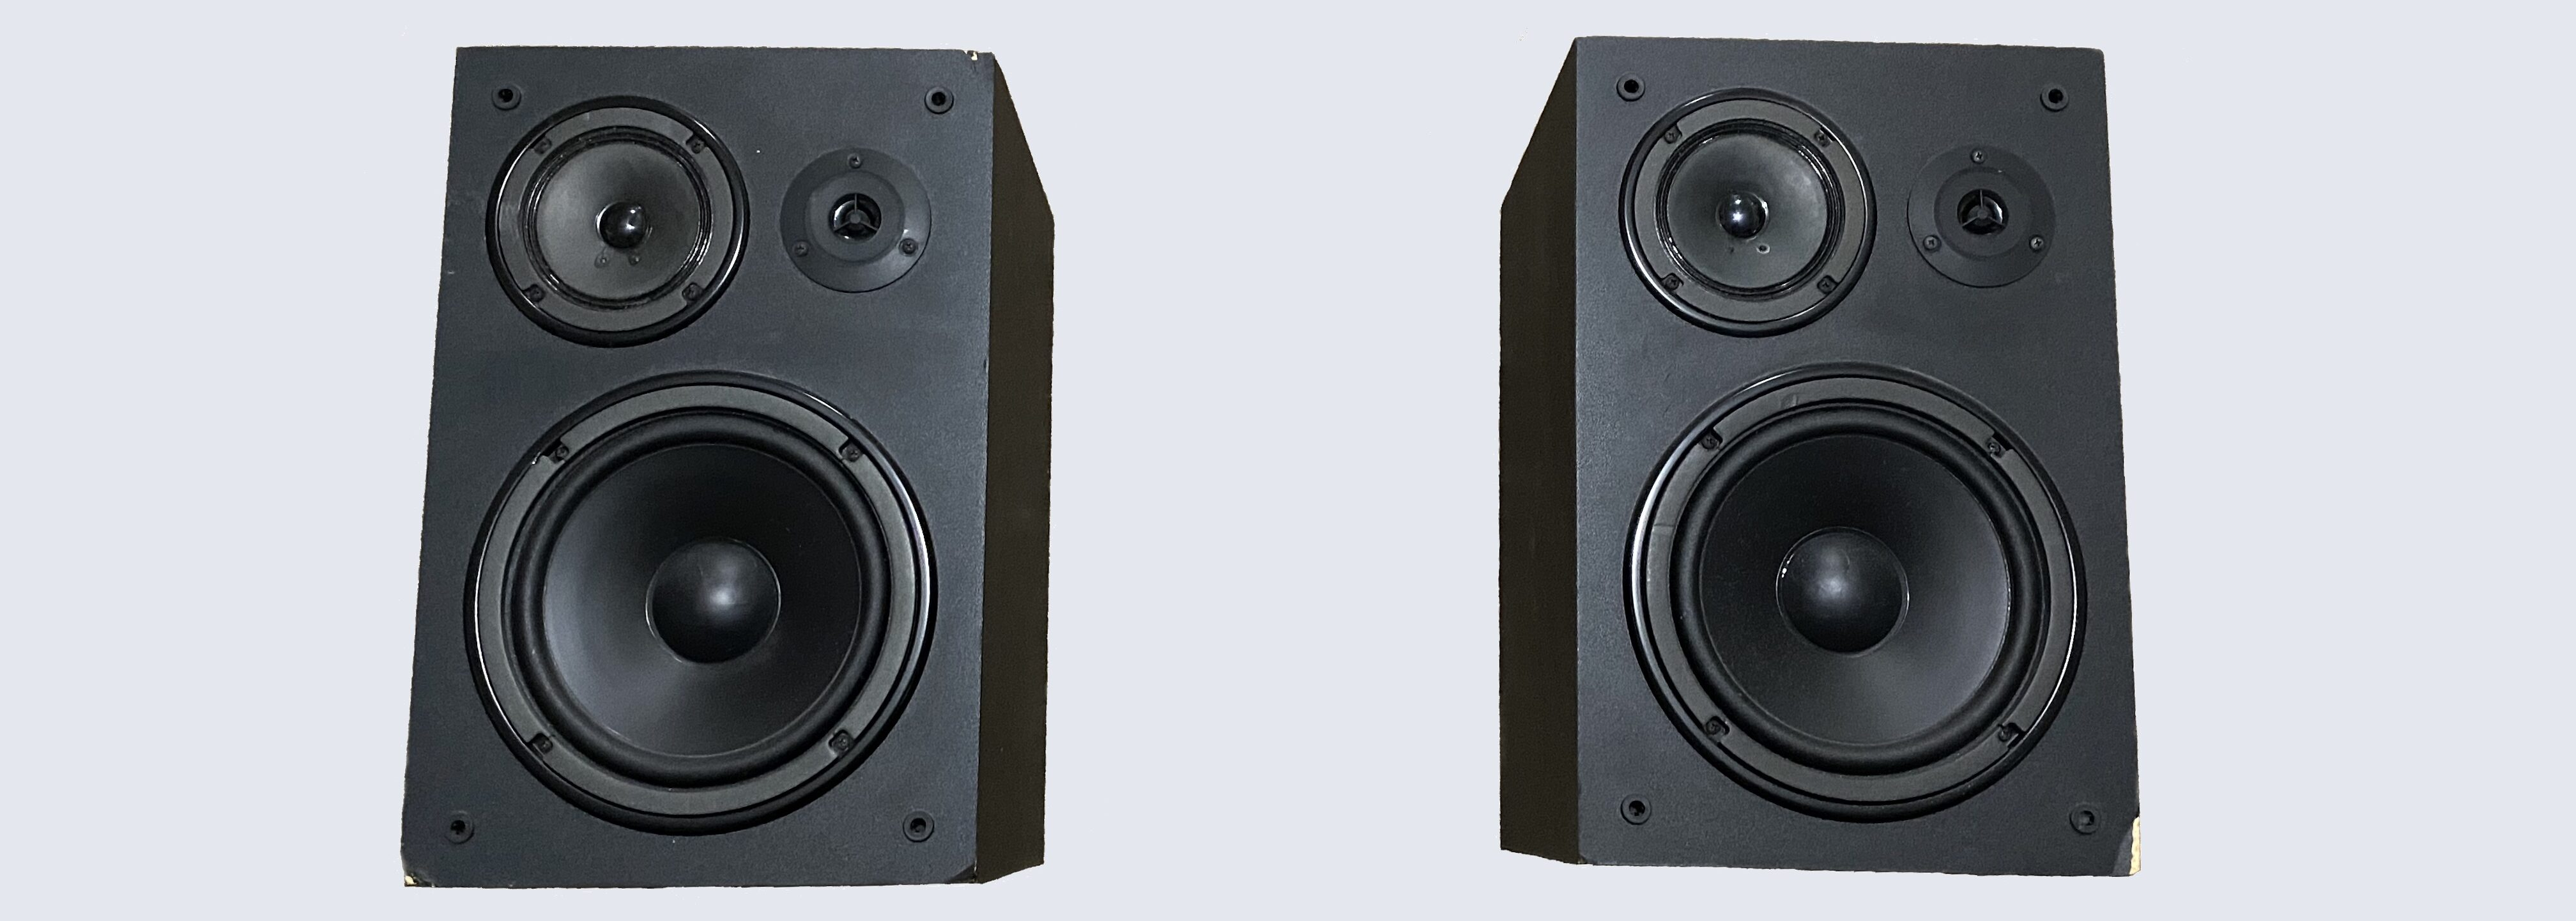 My Yamaha NS A637 Speakers